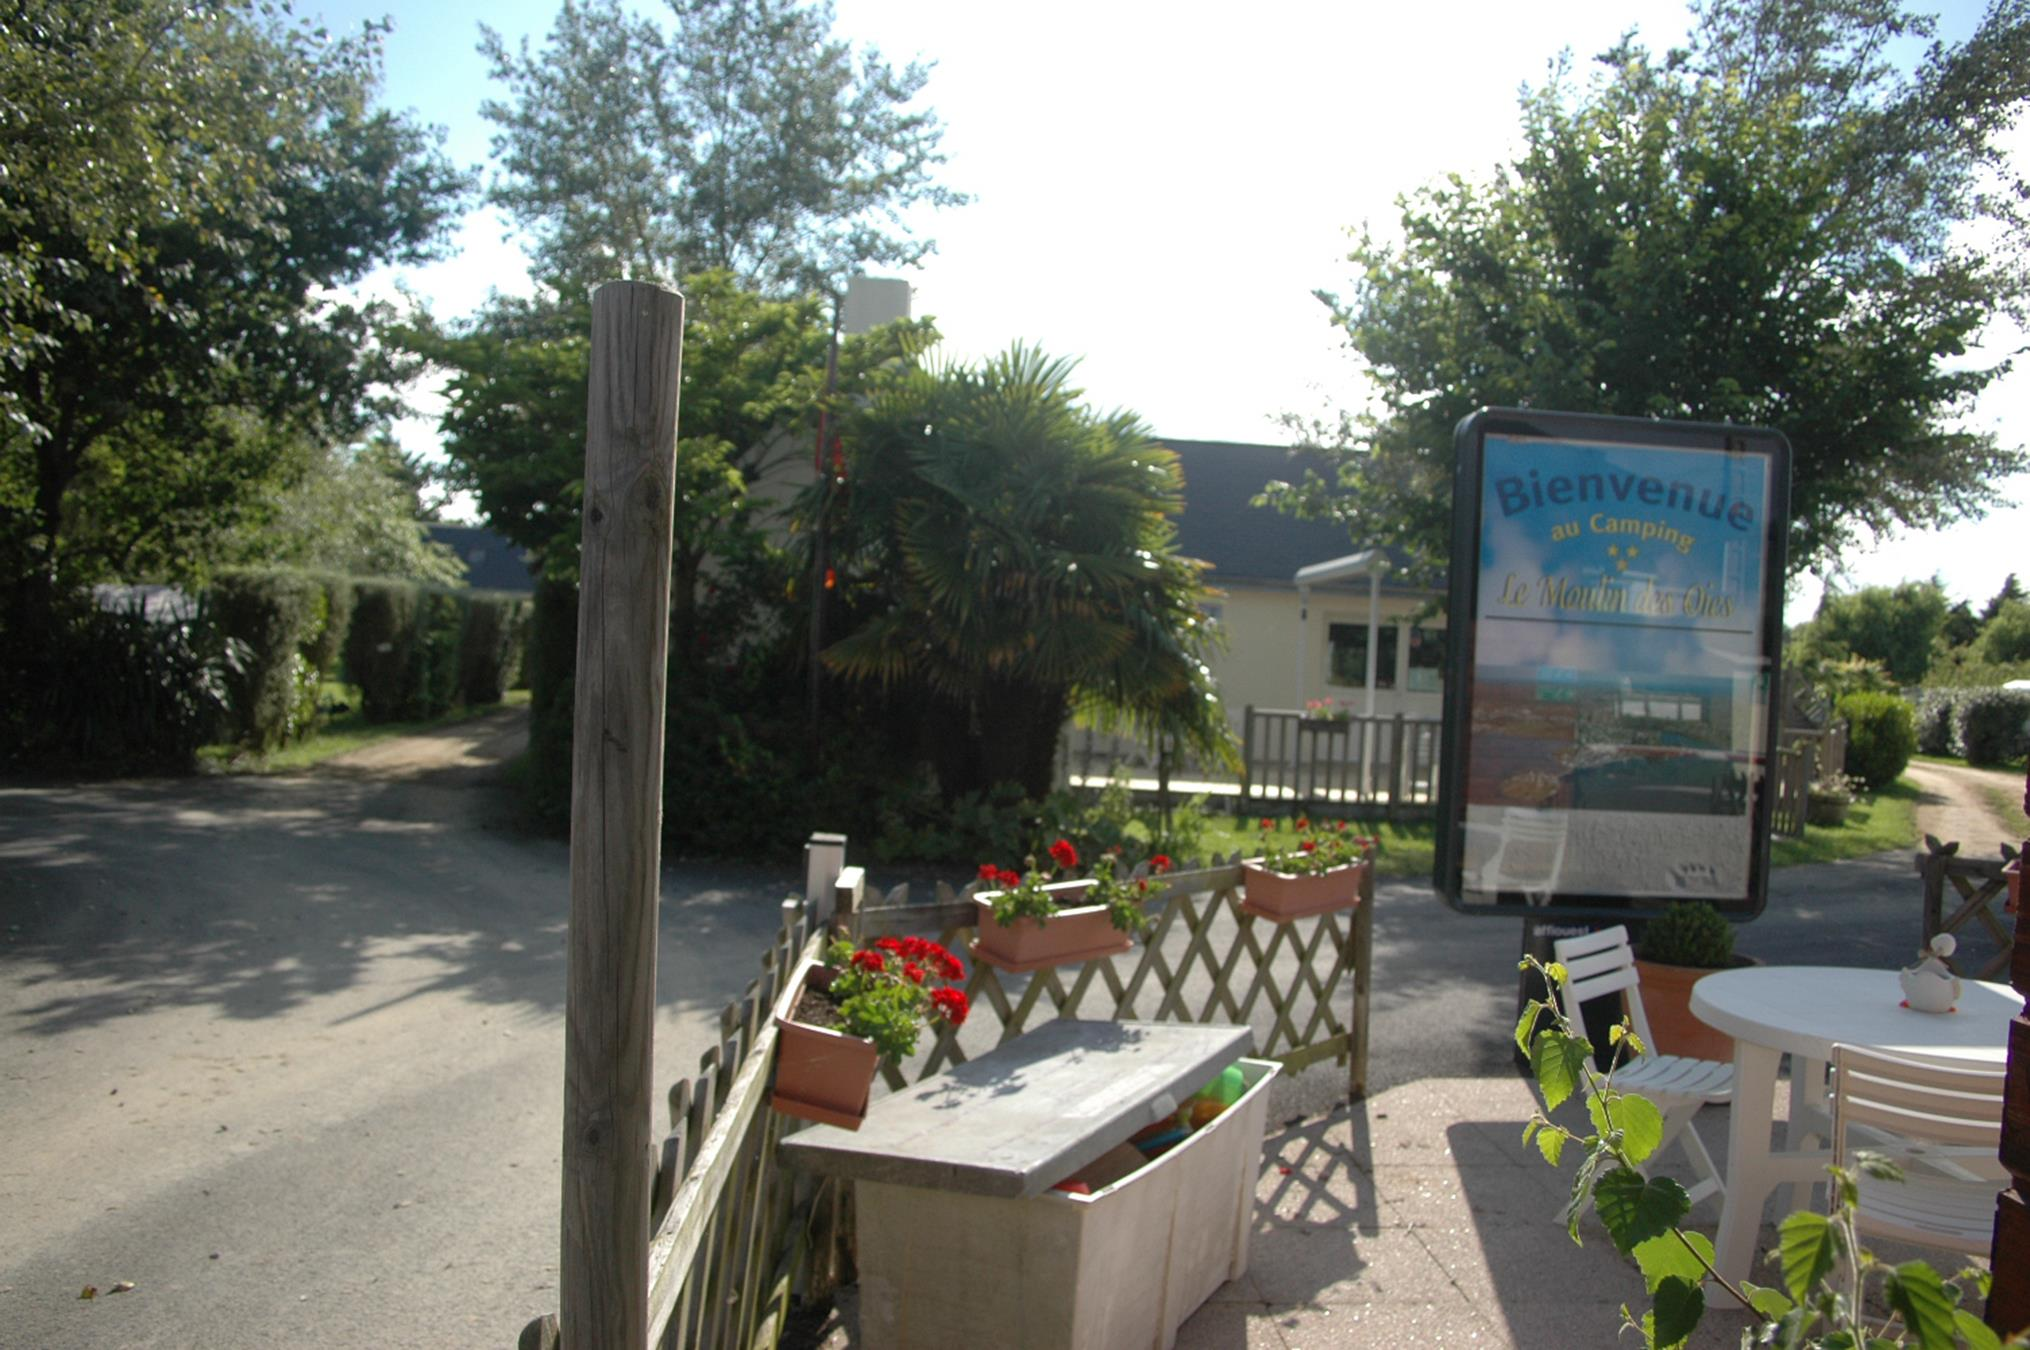 Entertainment organised Camping Le Moulin des Oies - BELZ